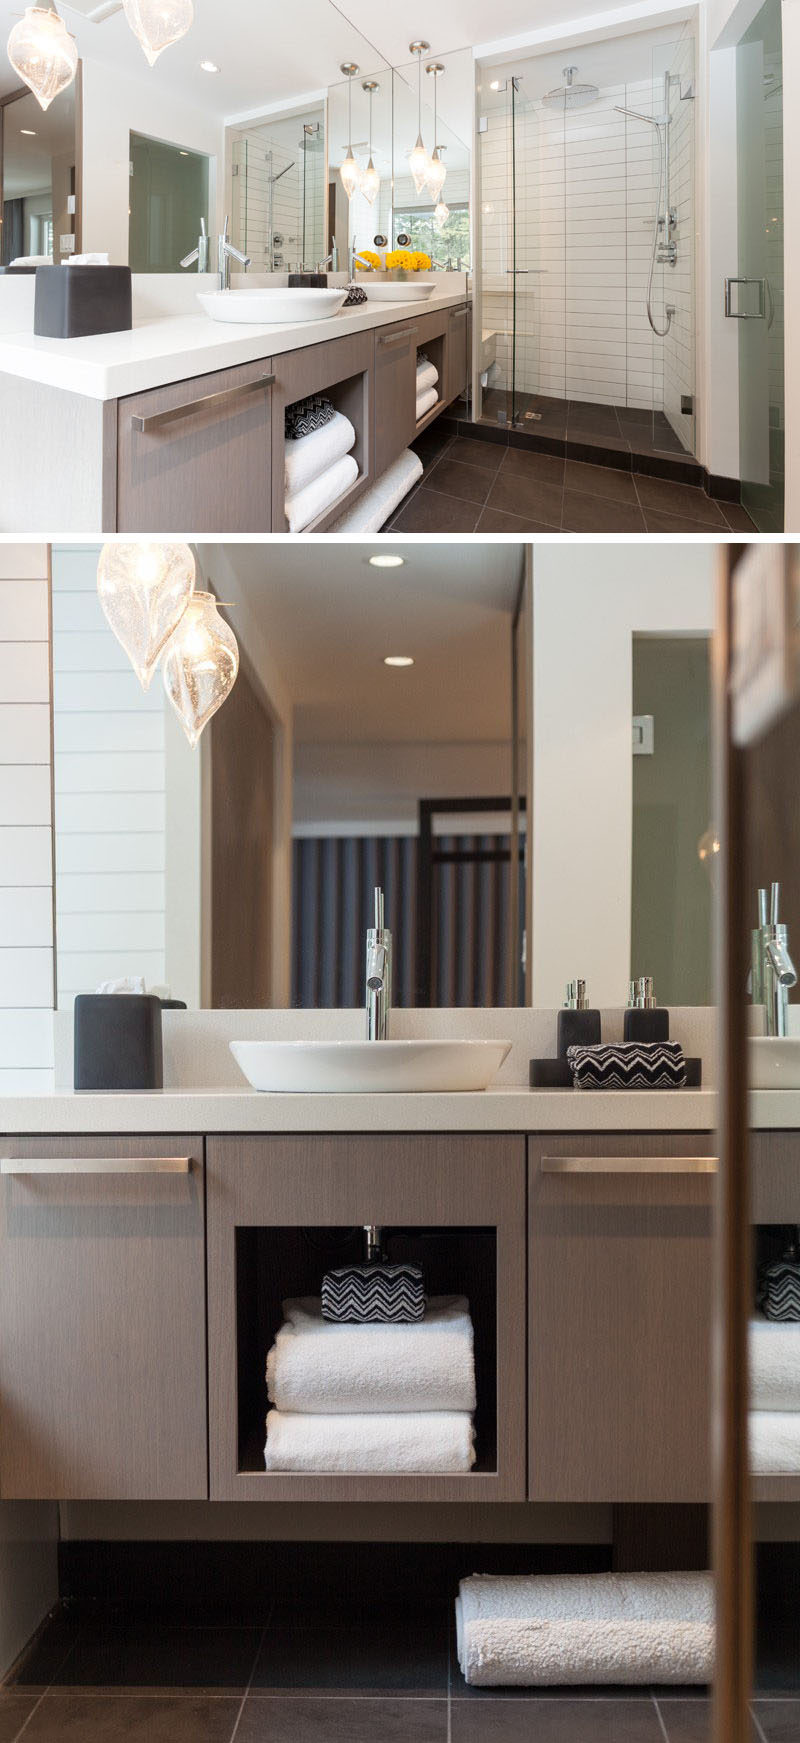 Incroyable 15 Examples Of Bathroom Vanities That Have Open Shelving // Under Each Of  The Sinks